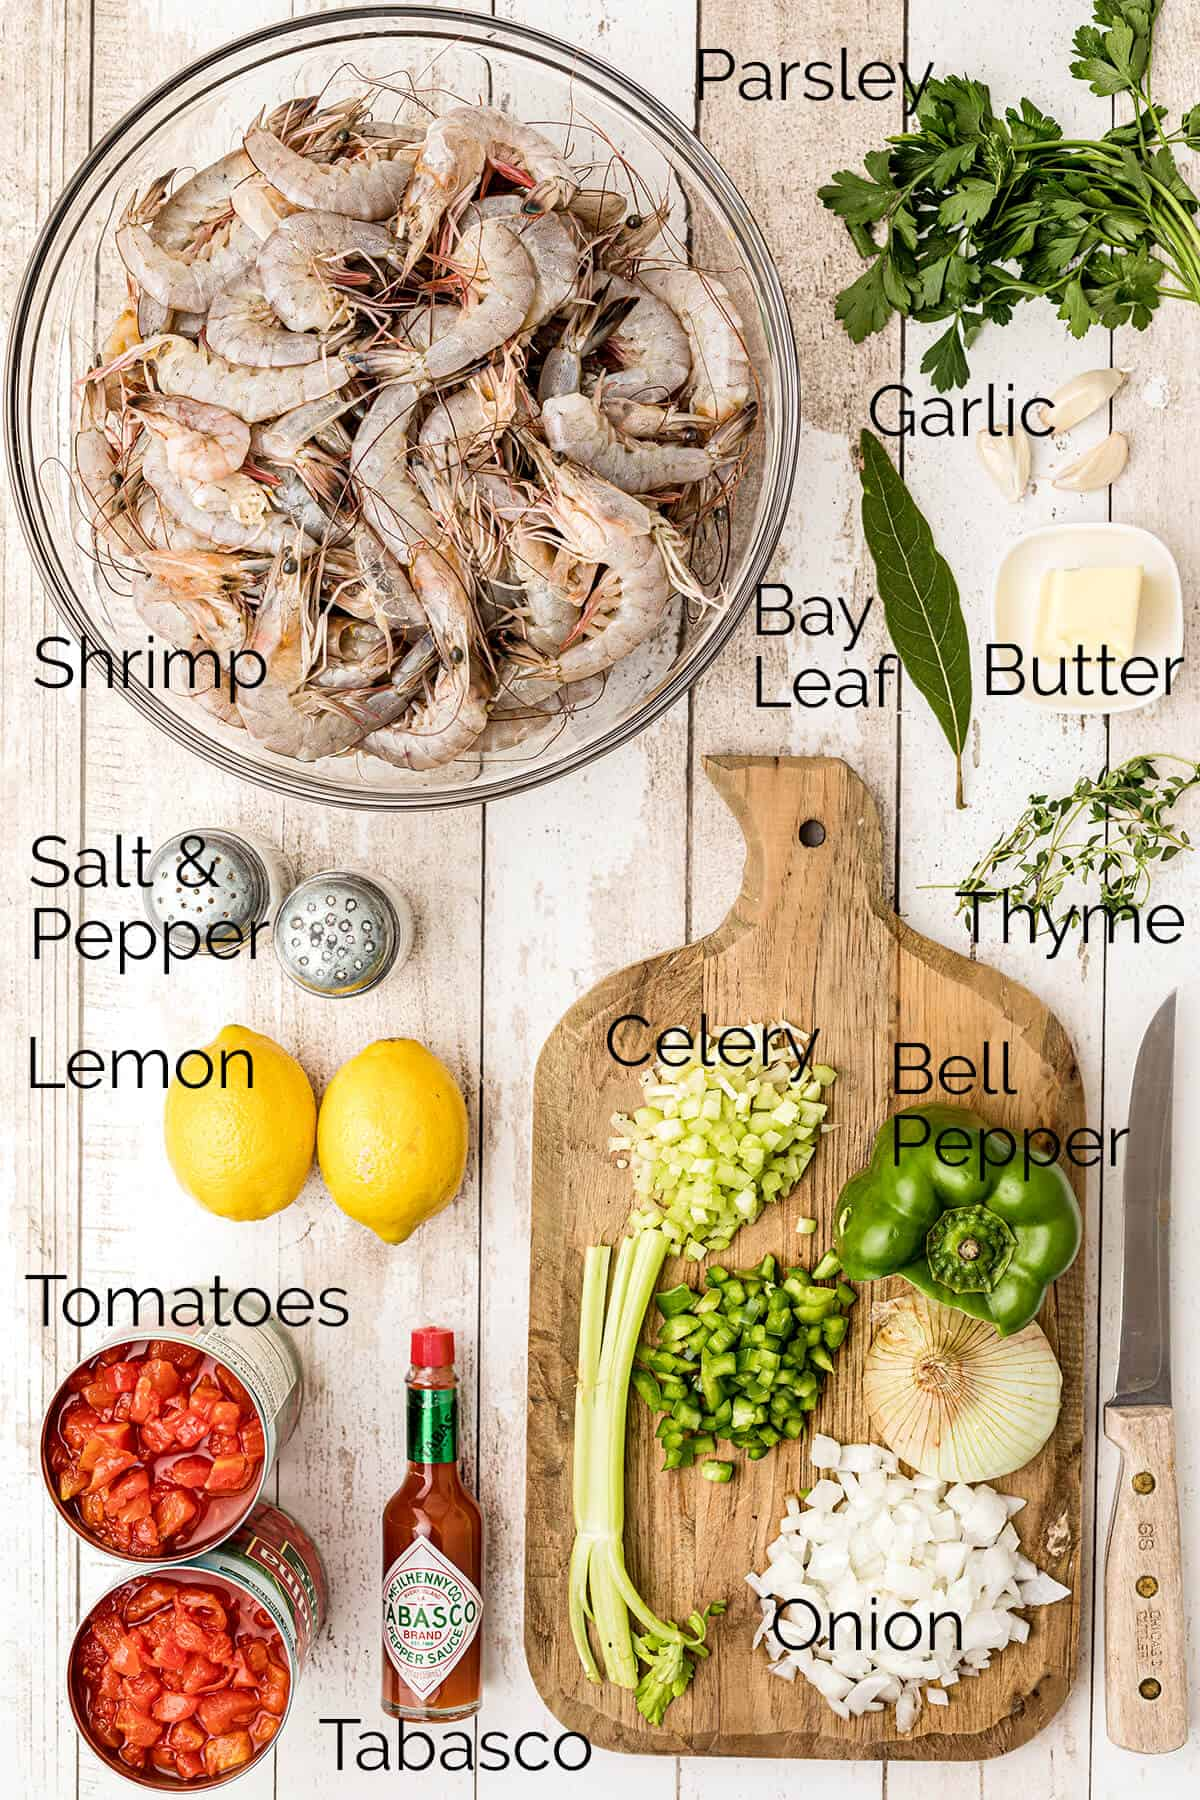 Photo showing all the ingredients needed for the recipe.